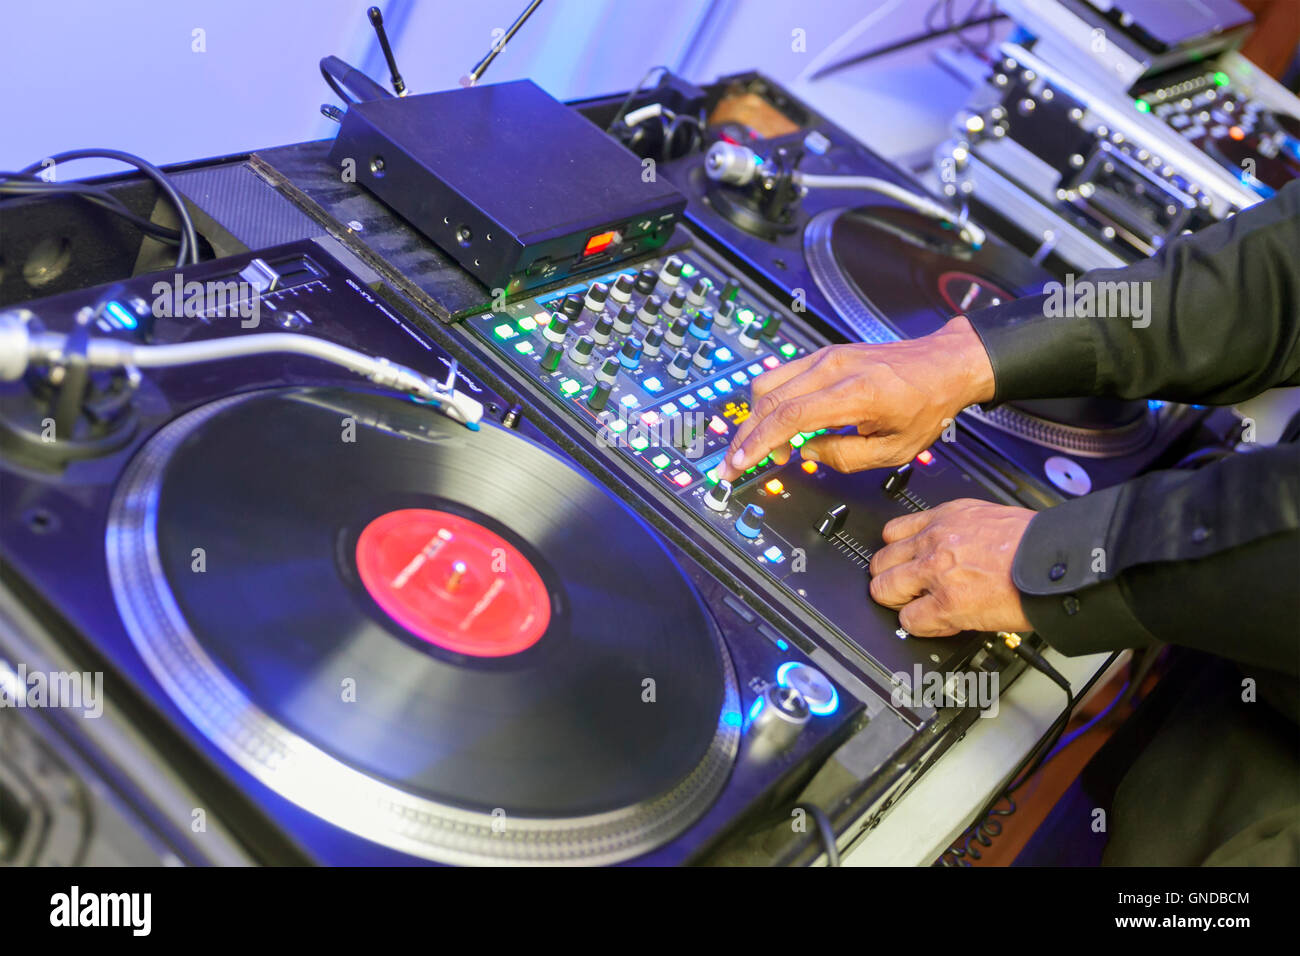 The DJ, Disc Jockey, plays vinyl records and music for a party. - Stock Image